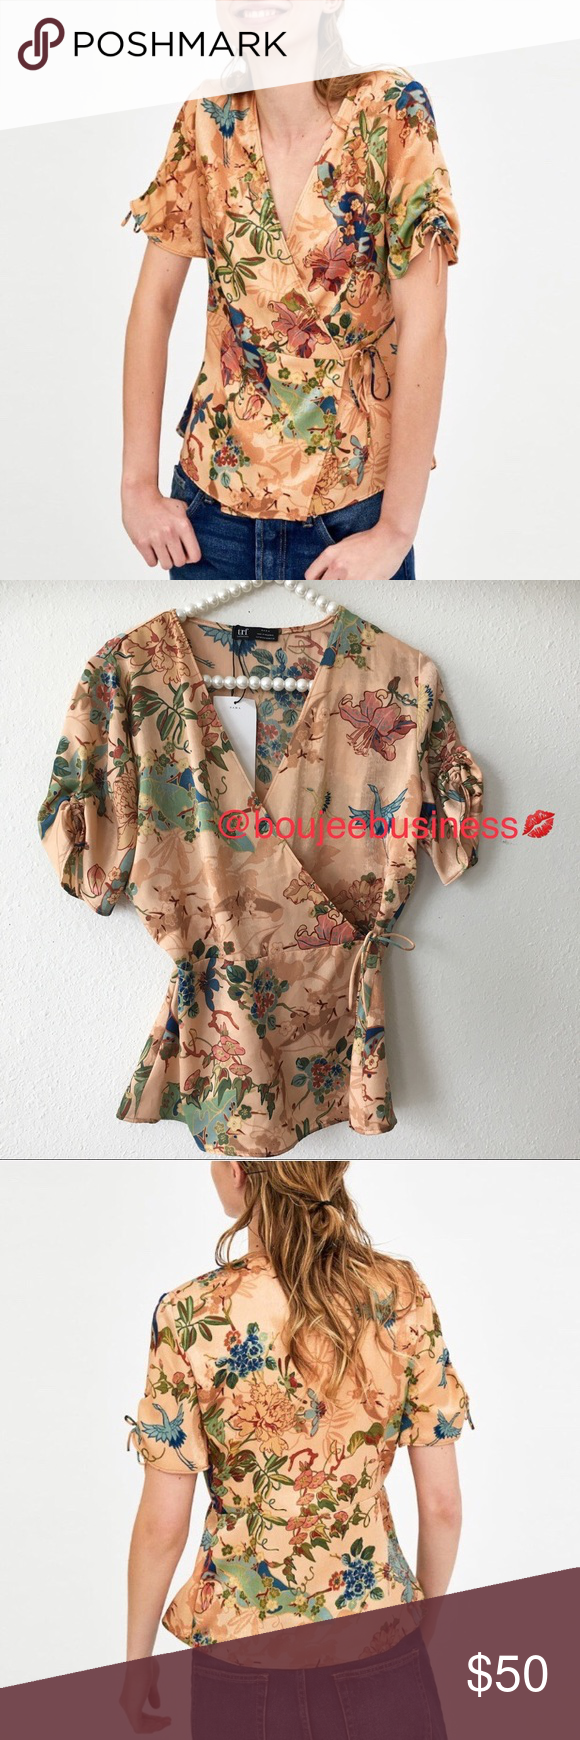 9ce304d0 ZARA Floral Print Crossover Wrap Top • 100% Polyester • Ties at ...